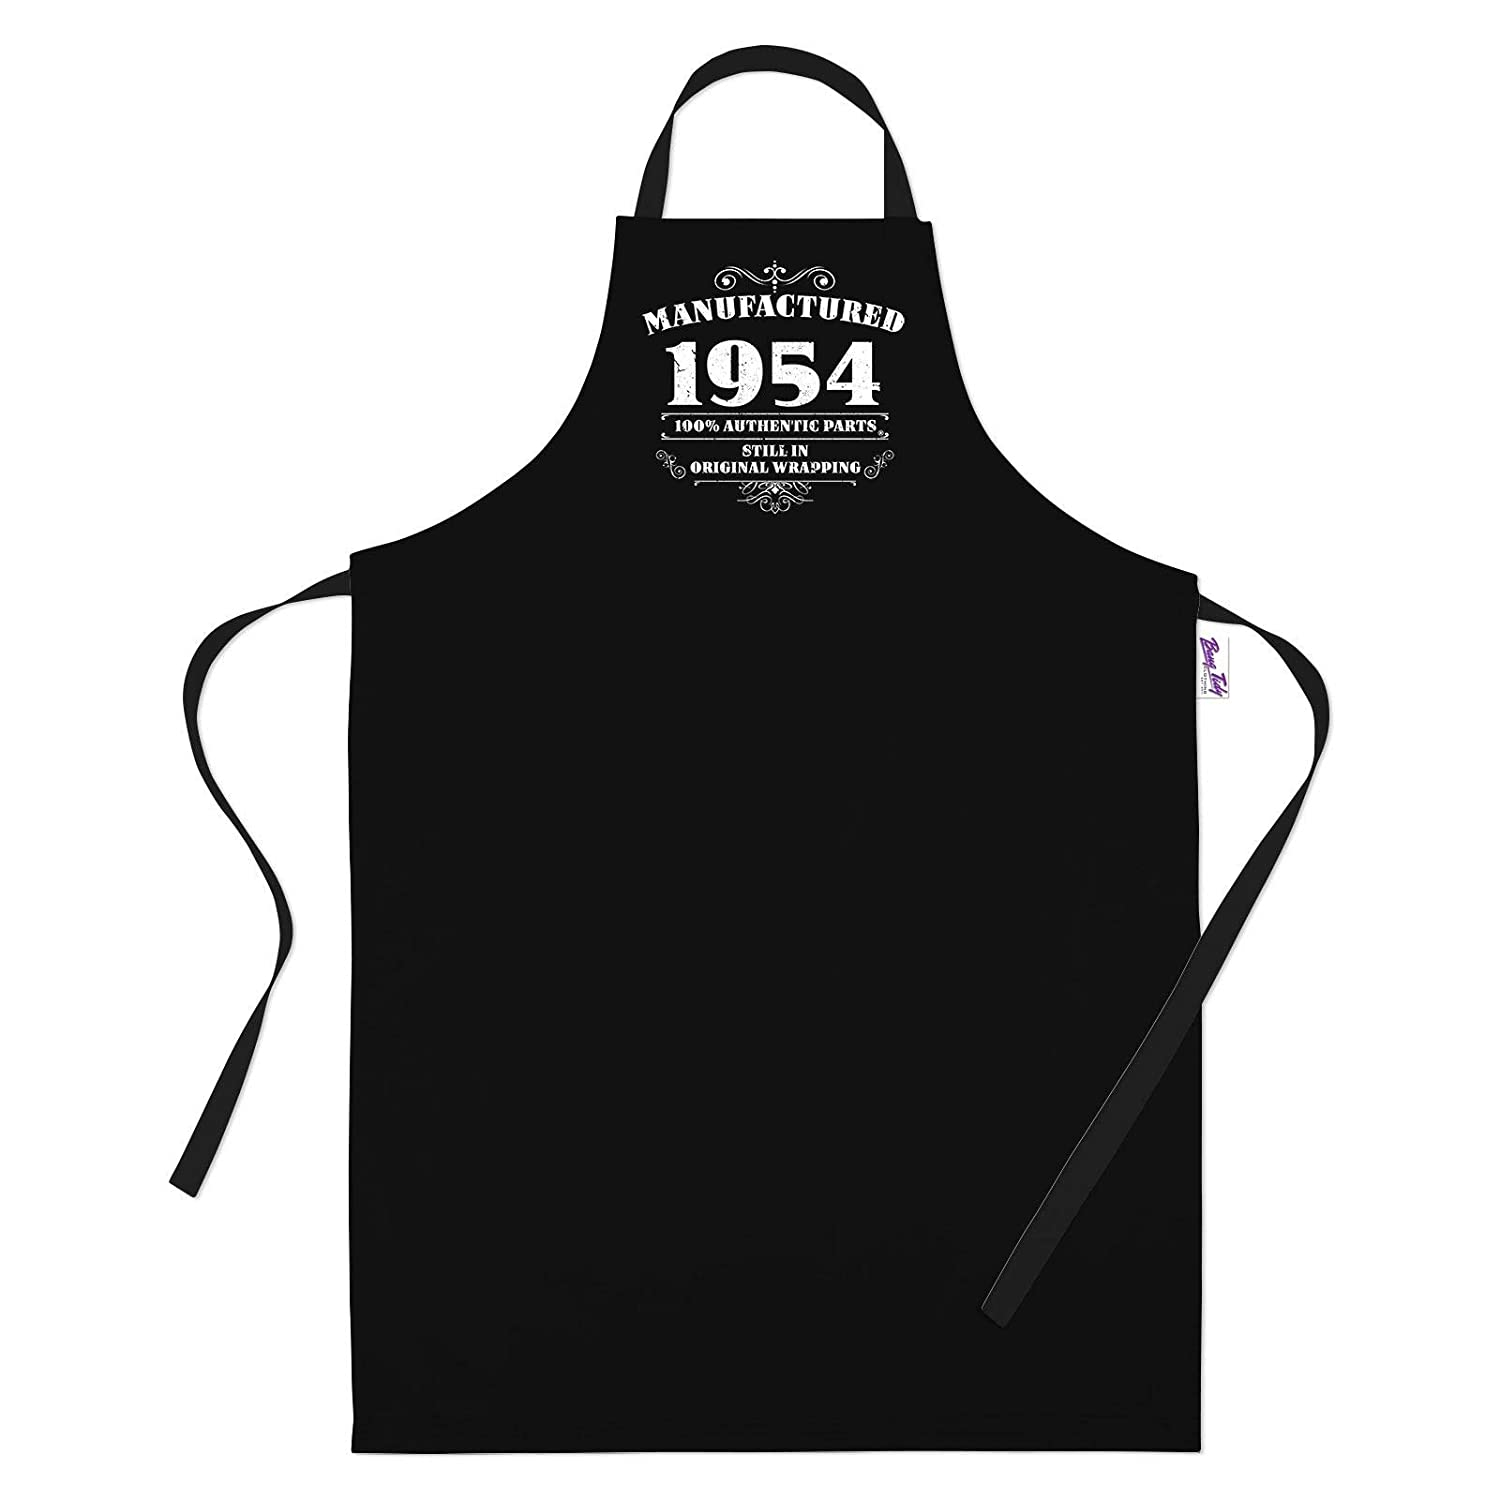 65th Birthday Presents for Women Ladies Gifts Her Funny Apron Manufactured 1954 Bang Tidy Clothing RA605